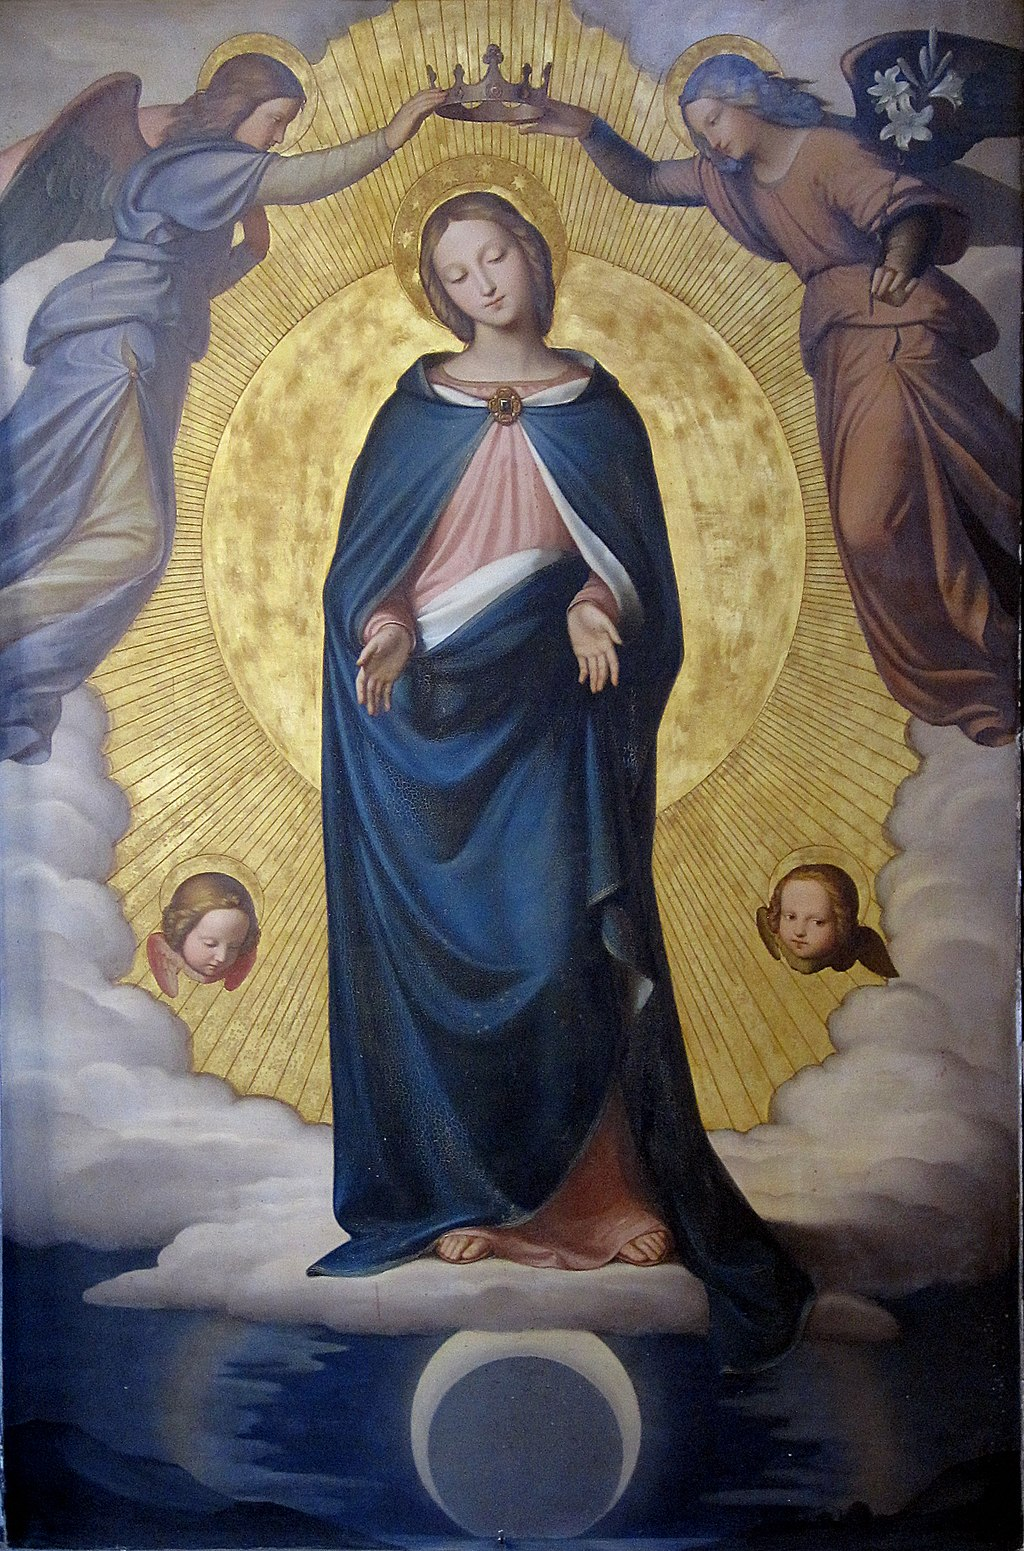 The Immaculate Conception (Philipp Veit)